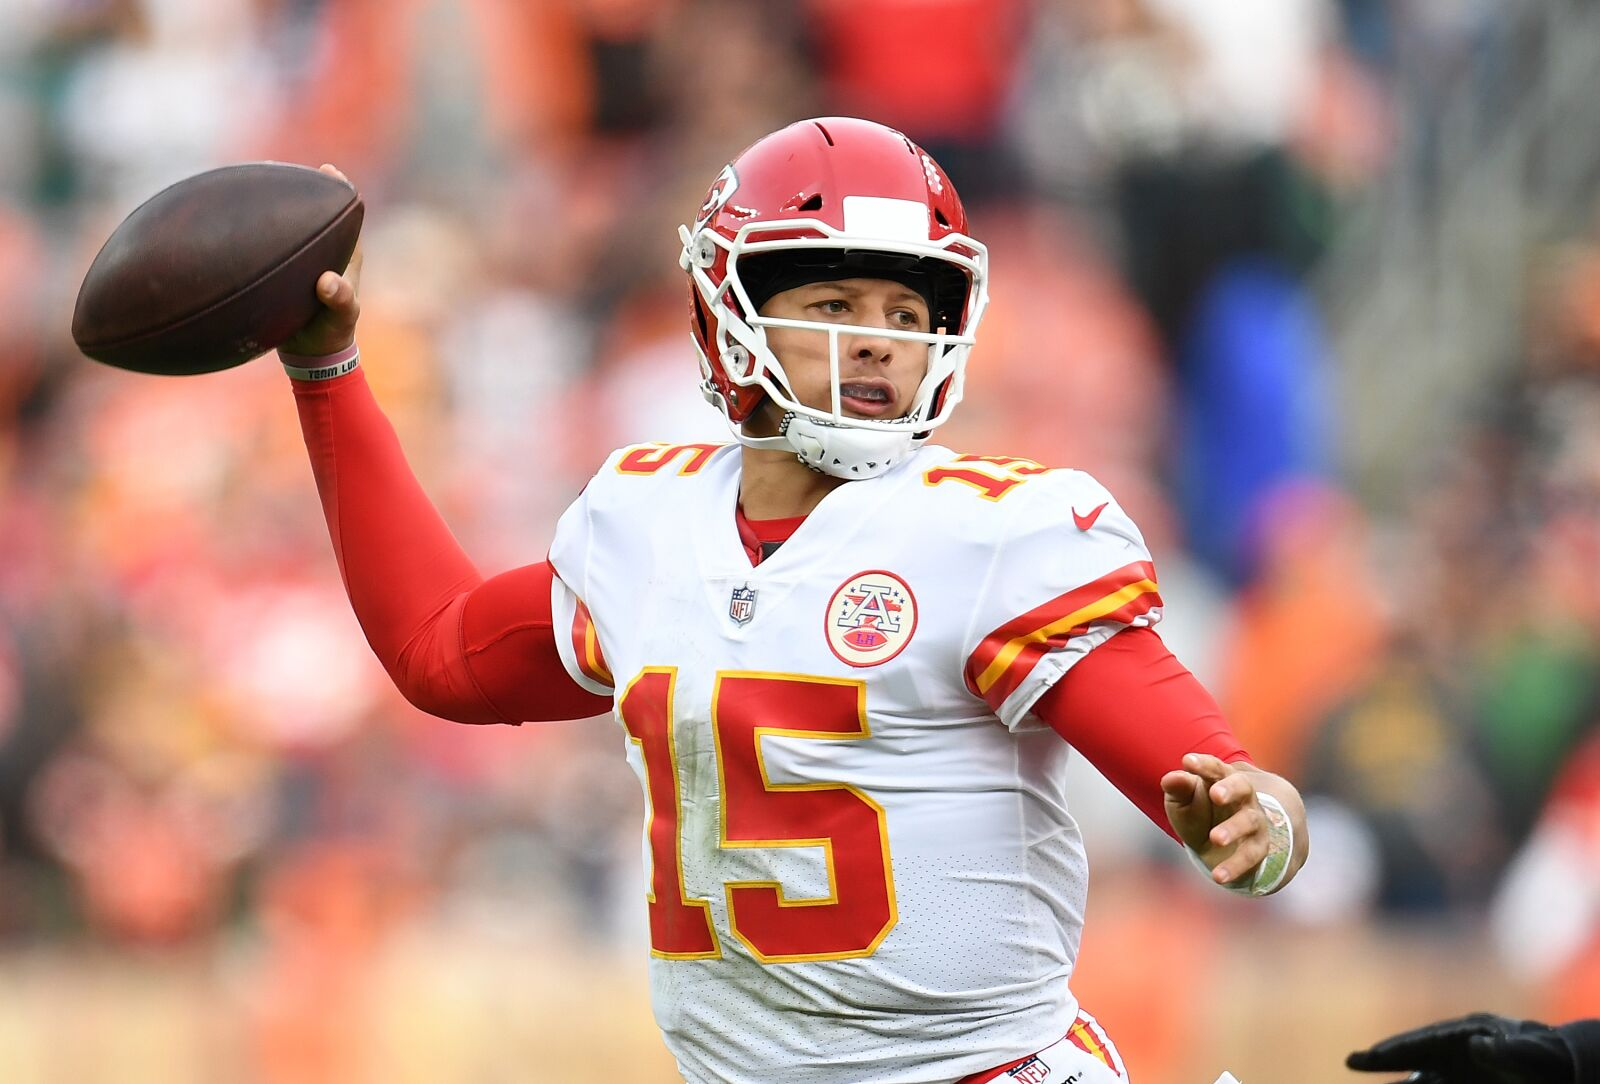 c9768063d Patrick Mahomes makes it look too easy against Browns